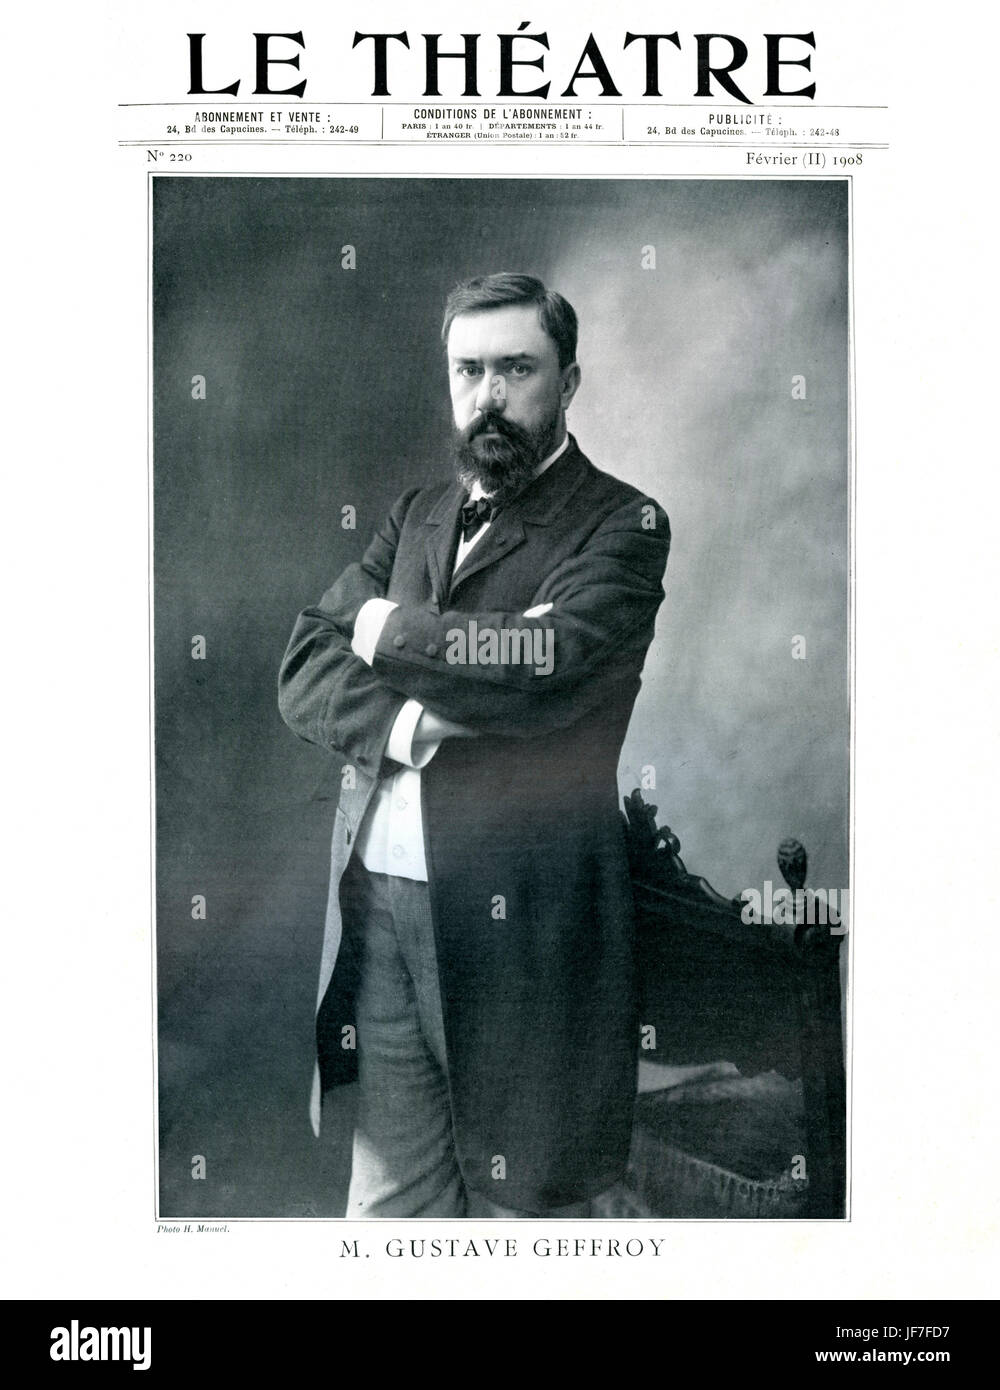 Gustave Geffroy, portrait. Le Theatre,February 1908. French journalist and art critic, one of the ten founding members - Stock Image